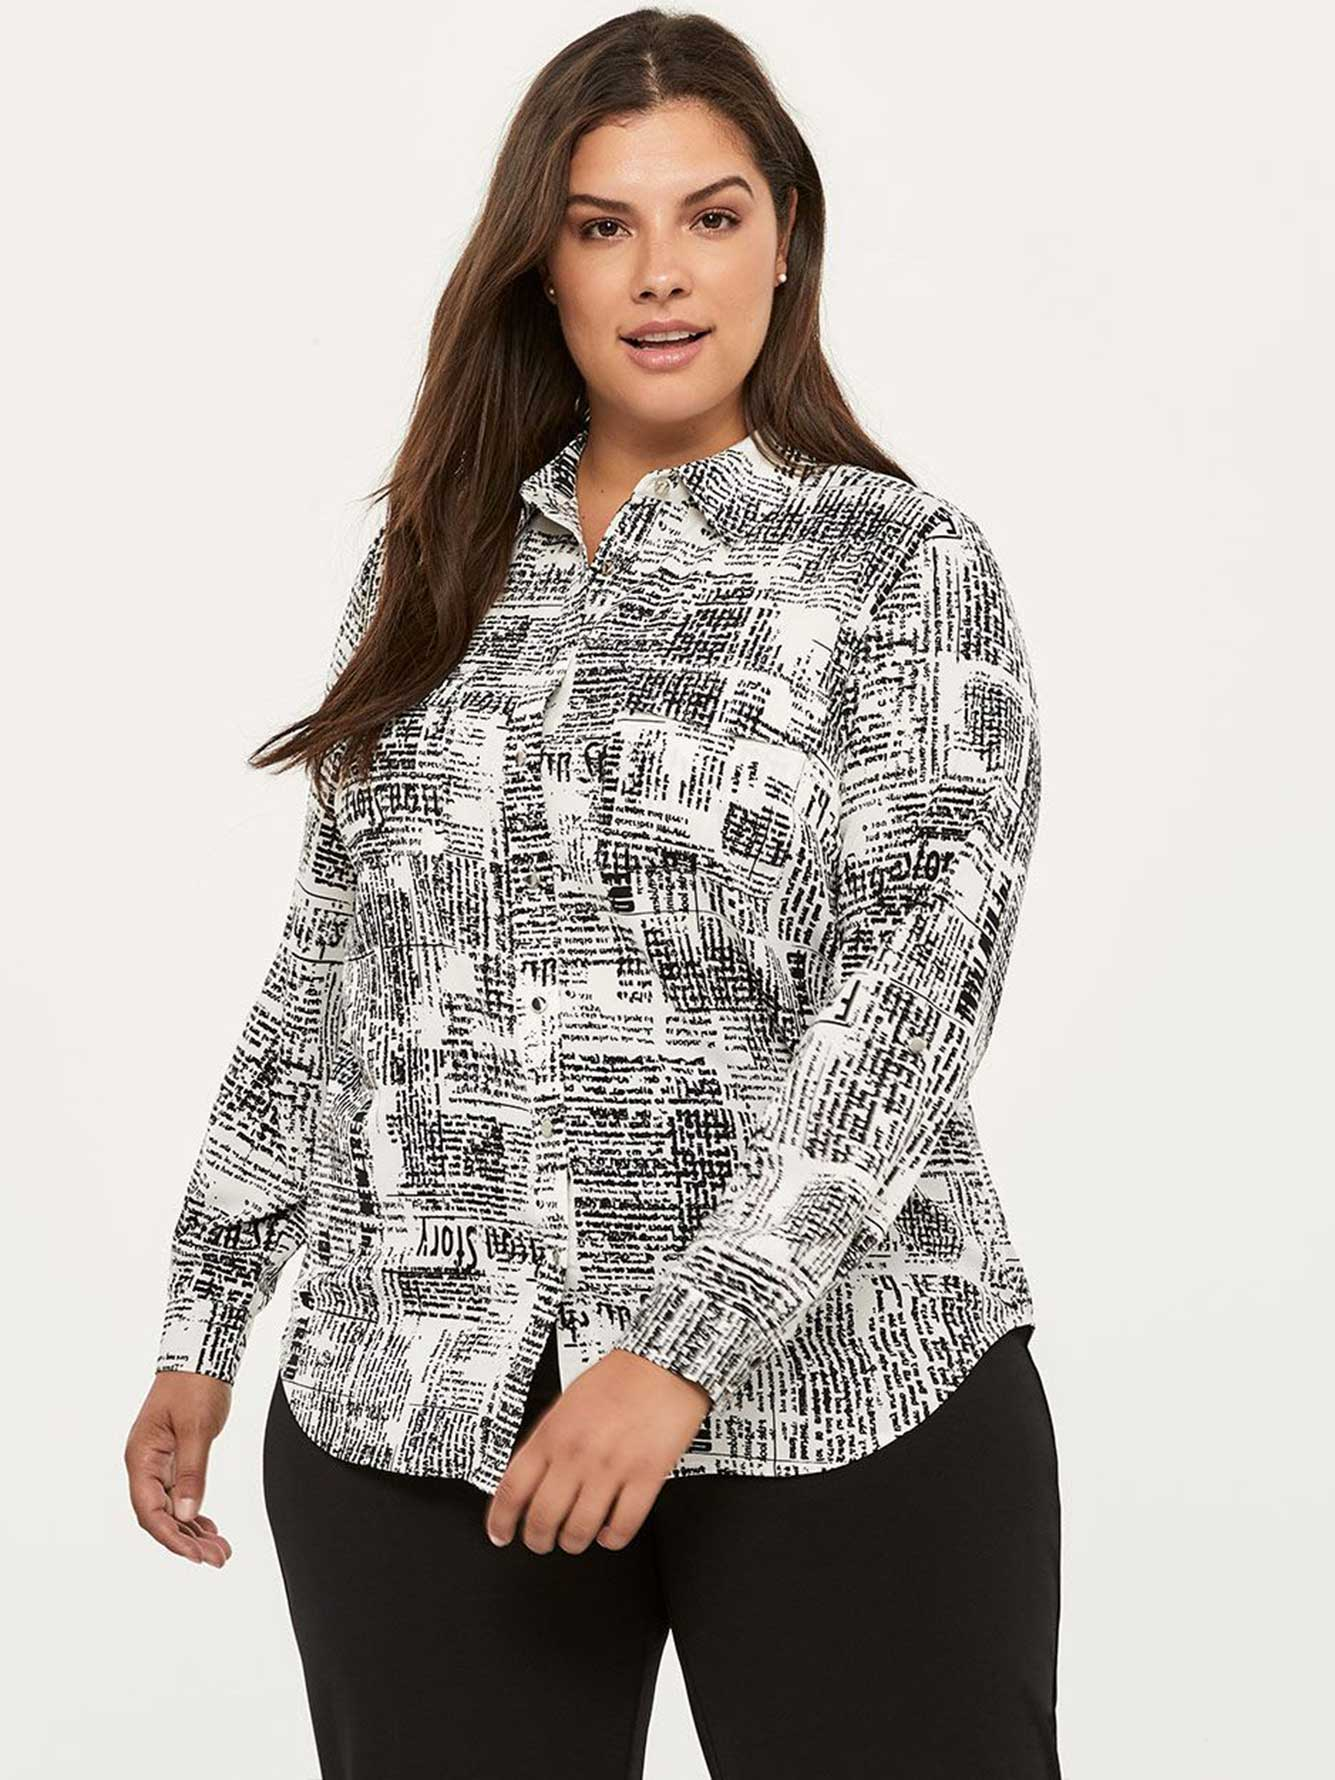 Printed Blouse with Pockets - In Every Story